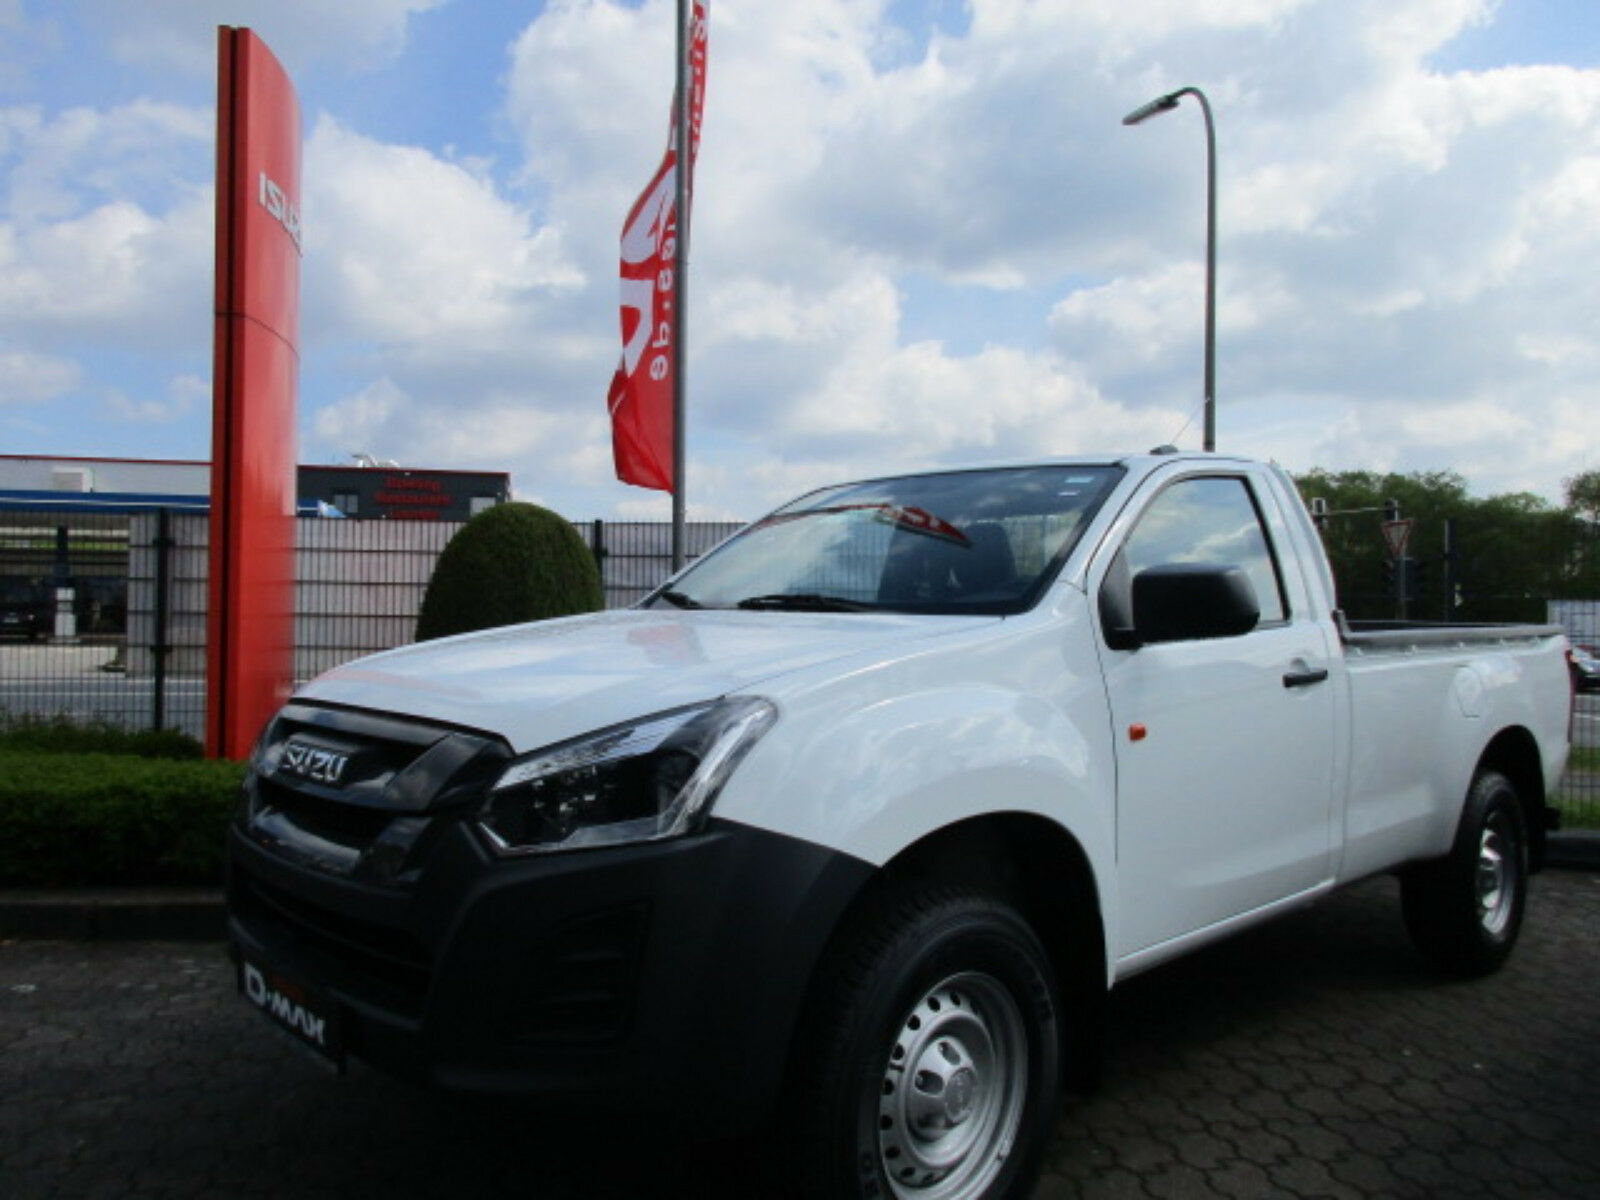 ISUZU D-Max Single Cab 4x4 Basis Sofort lieferbar!